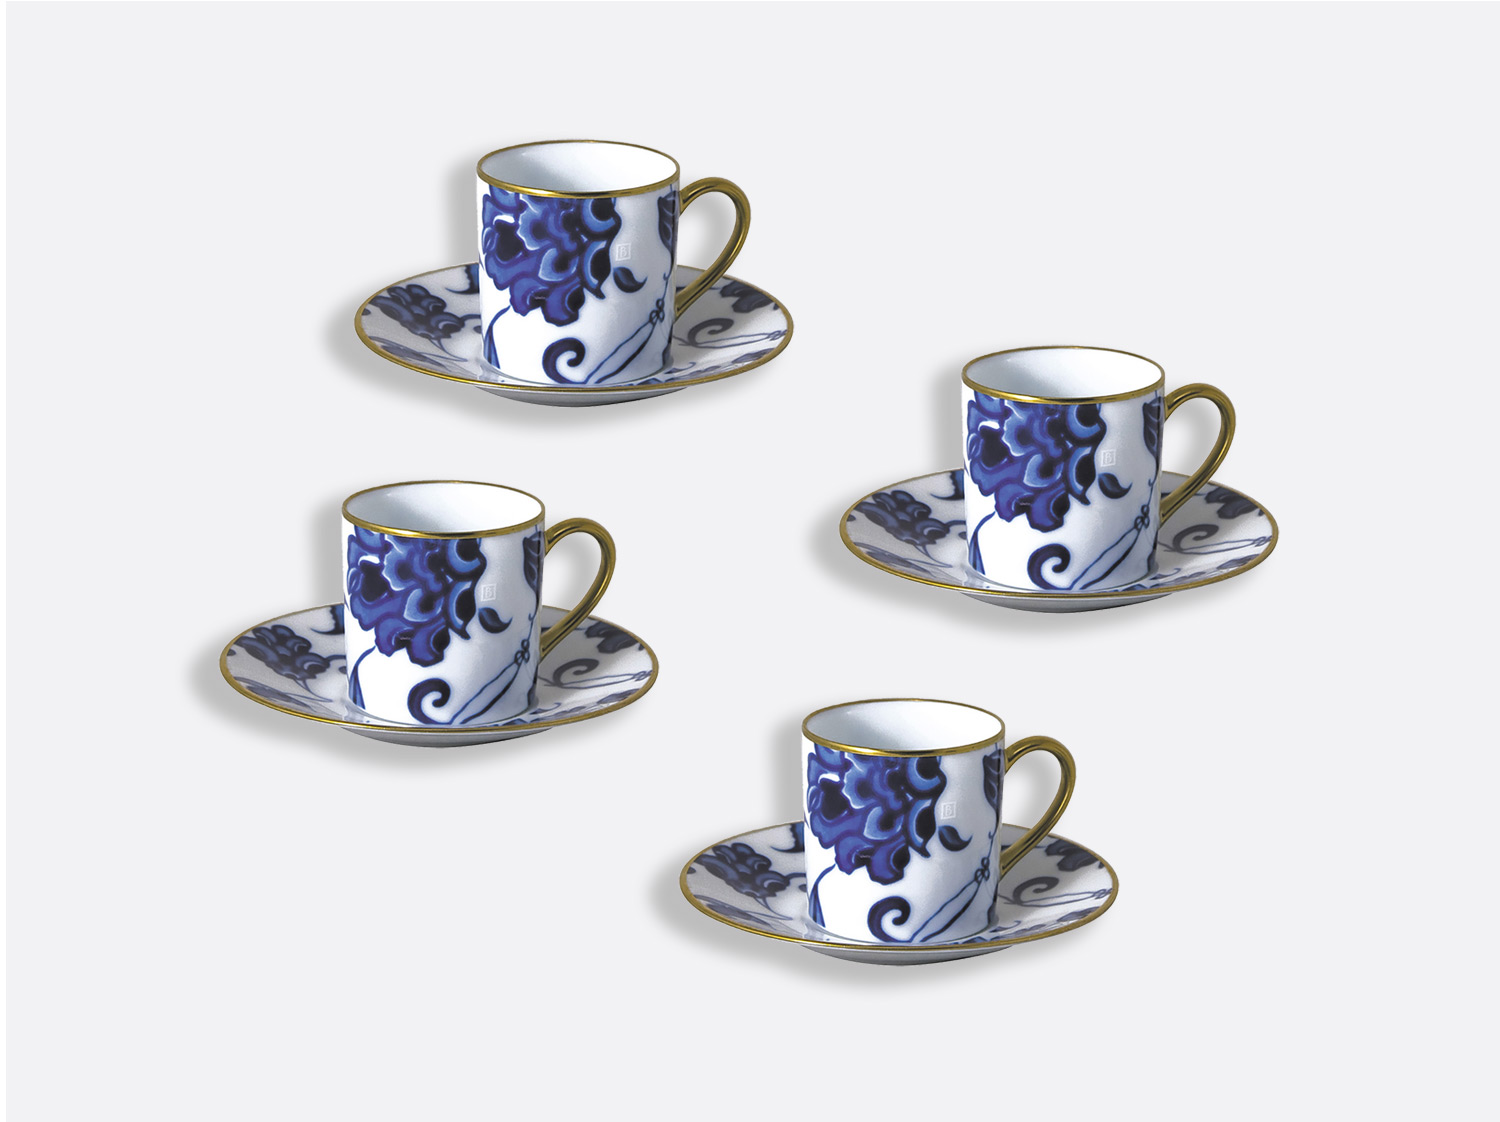 China Espresso cup and saucer gift box - 3 oz - Set of 4 of the collection Prince bleu | Bernardaud